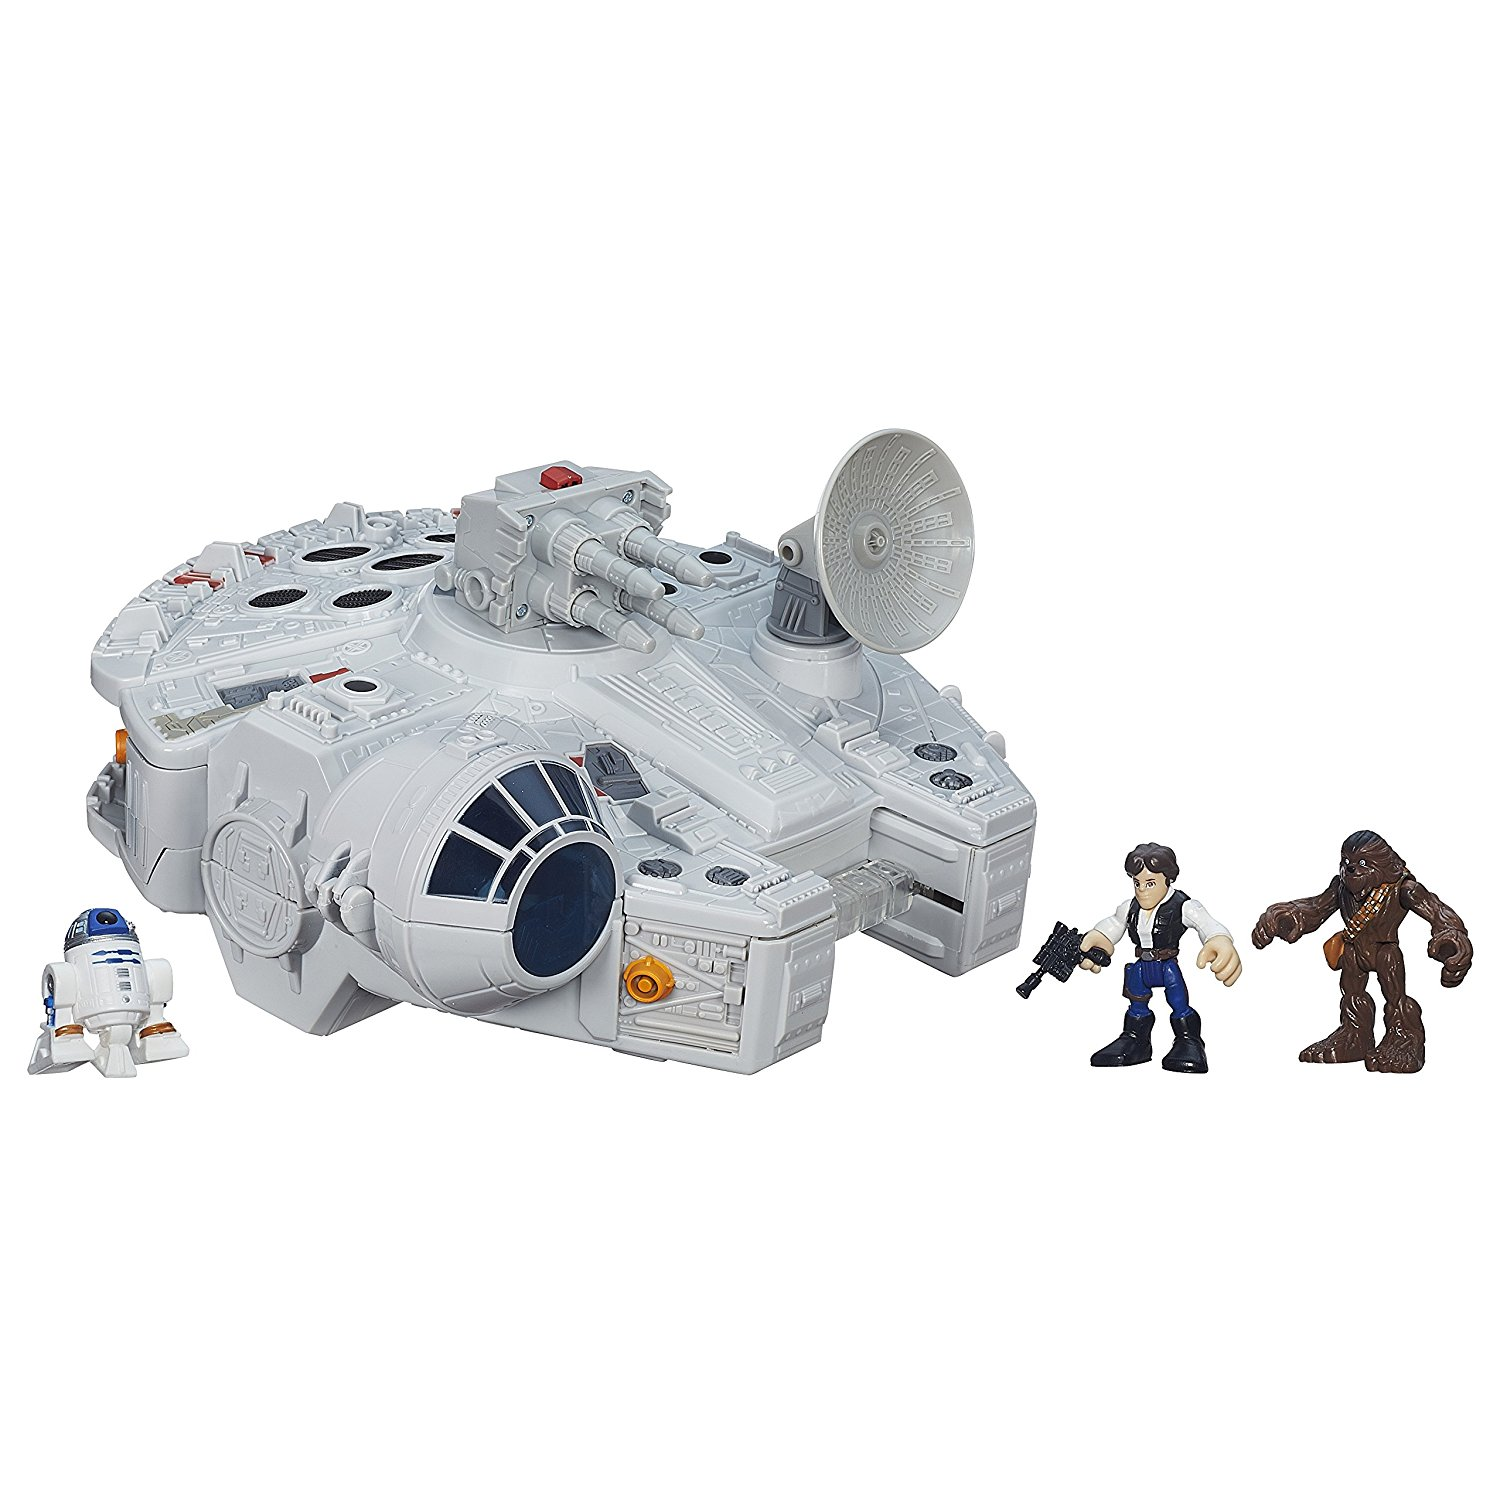 Playskool Heroes Star Wars Galactic Heroes Millennium Falcon and Figures by